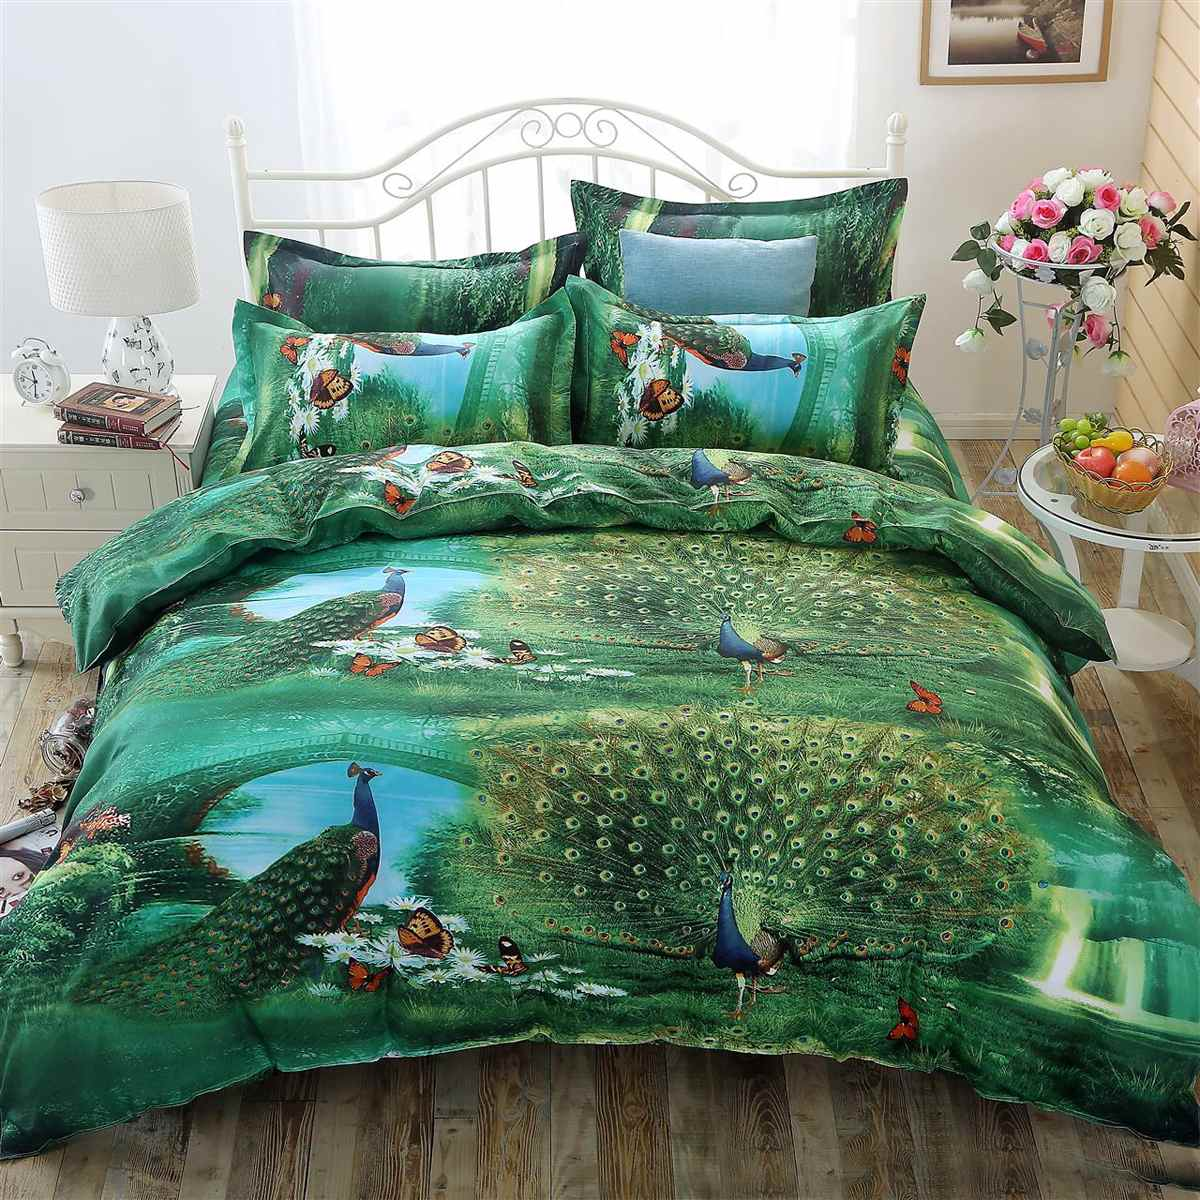 4pcs Bedding Set luxury 3D Peacock Cotton Bedding sets Bed Sheet Duvet Cover Pillowcase Cover set King Queen size Bedspread(China)